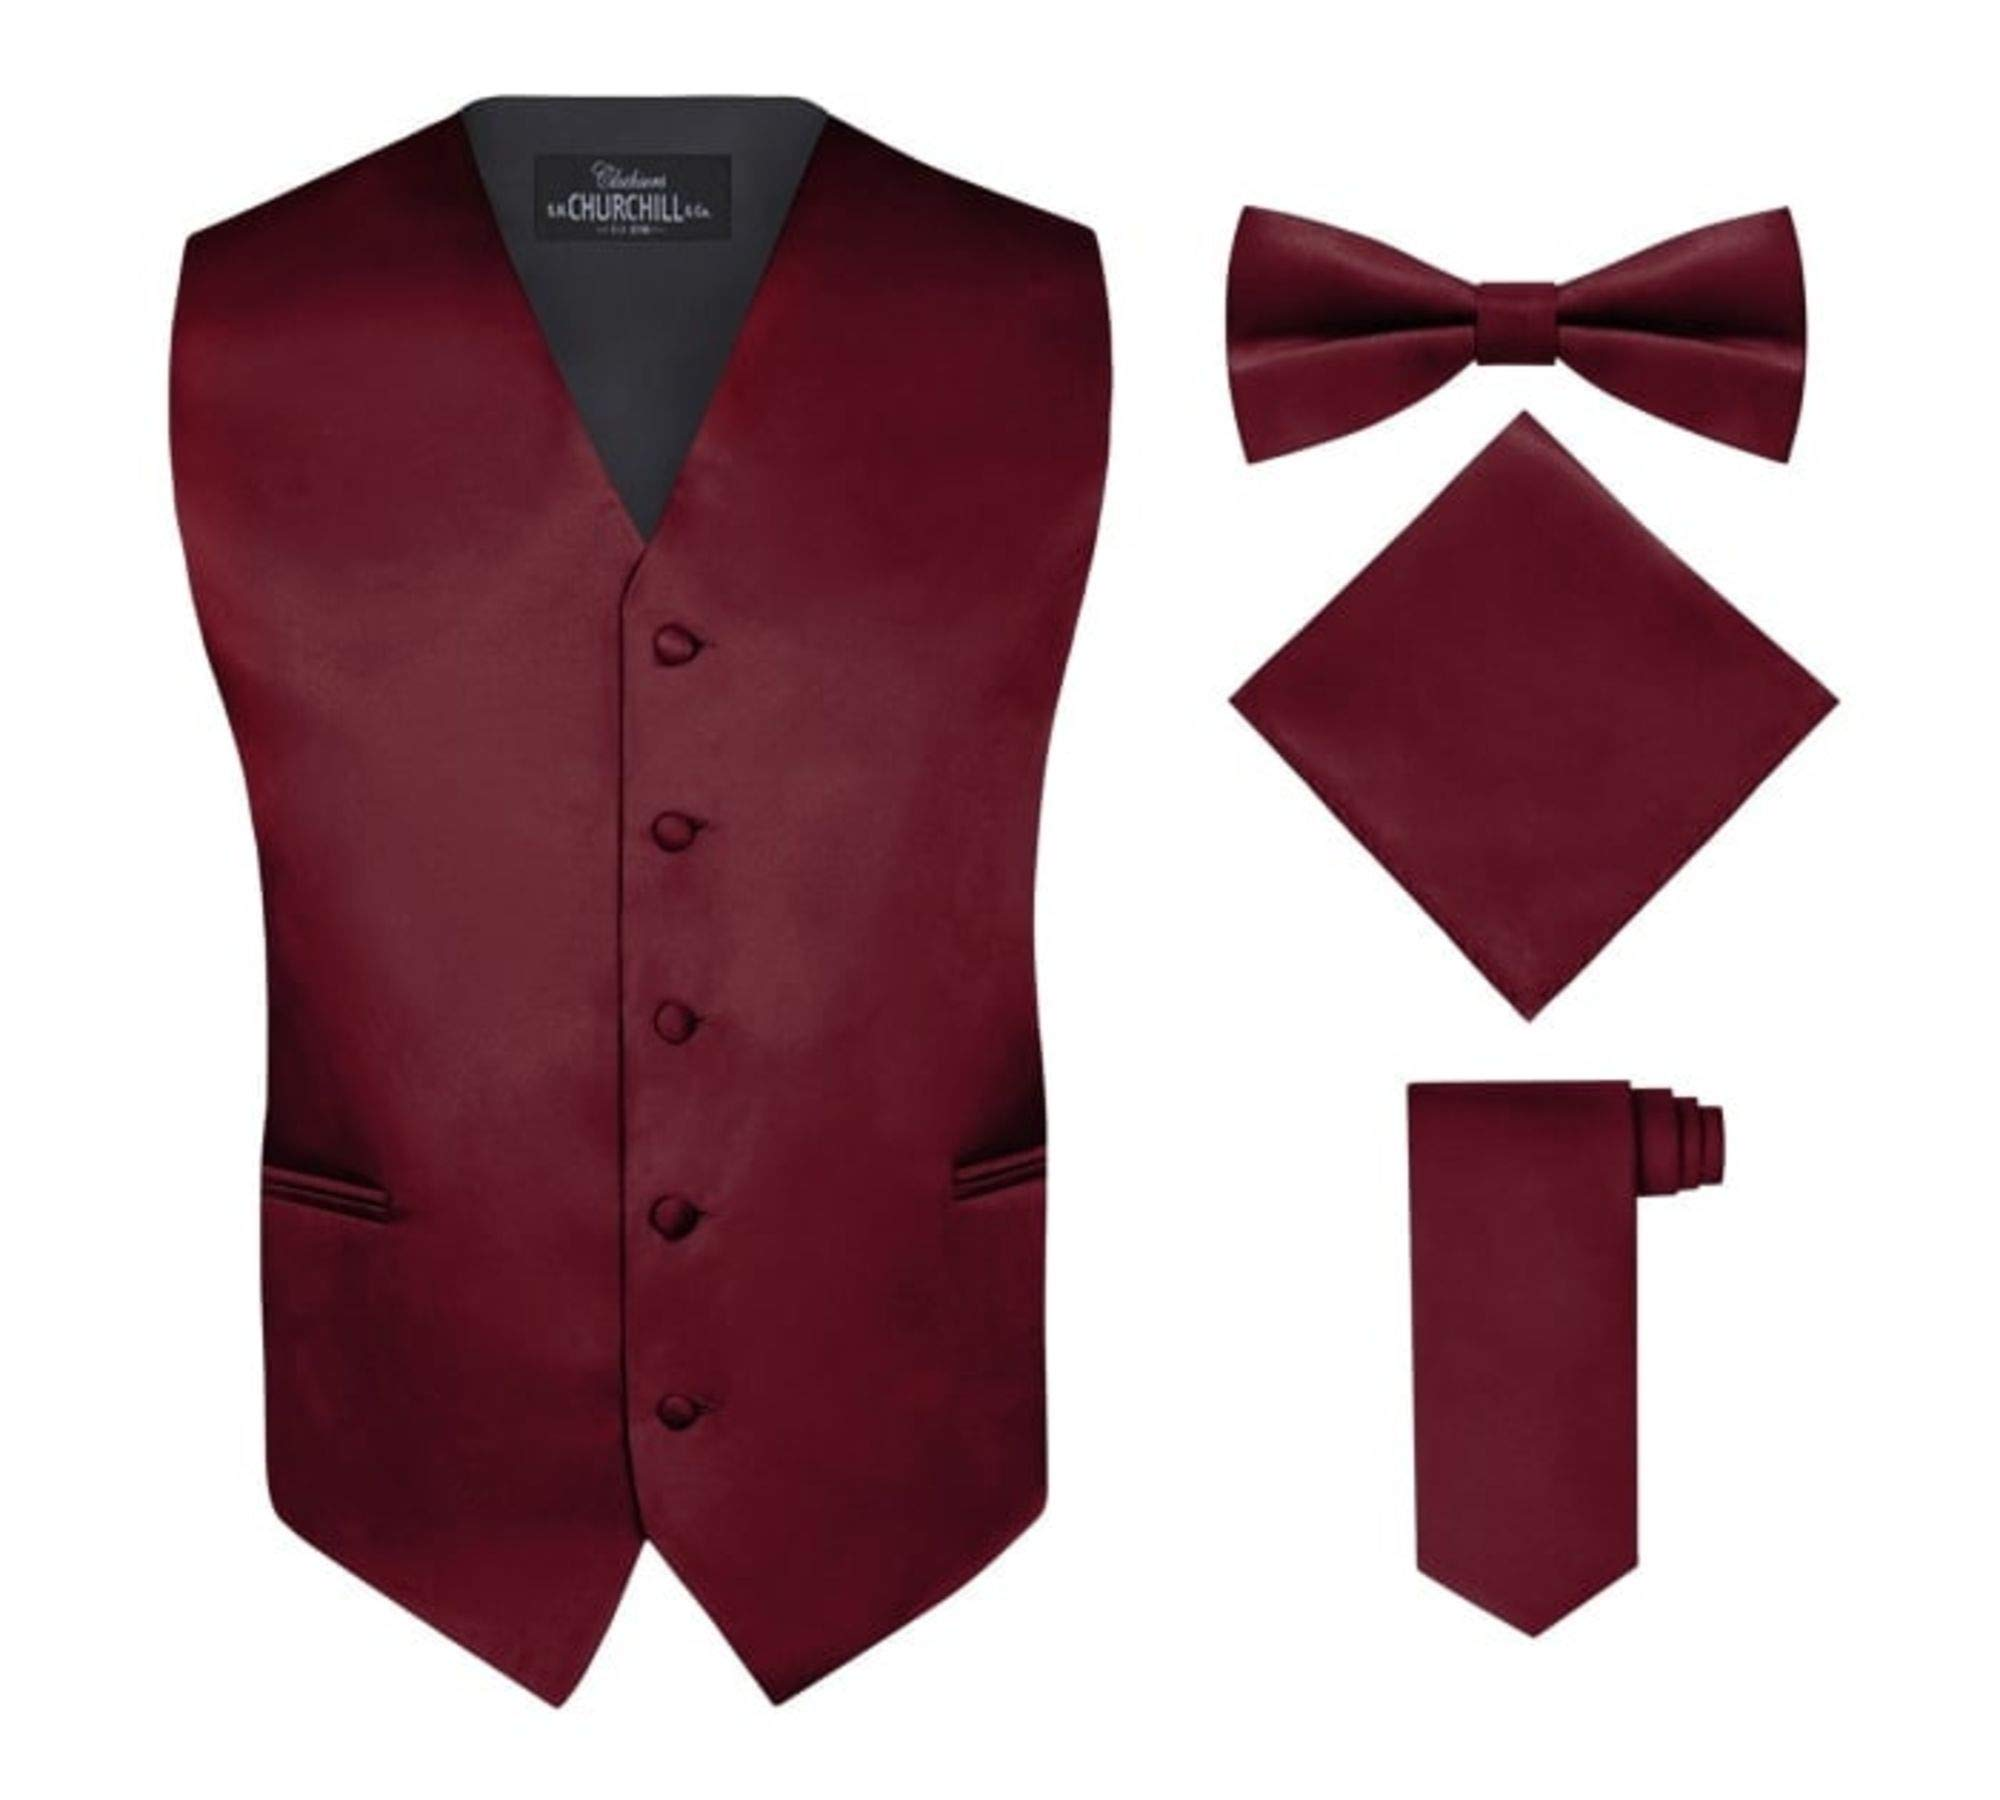 S.H. Churchill & Co. Men's 4 Piece Vest Set, with Bow Tie, Neck Tie & Pocket Hankie - Burgundy, 3XL